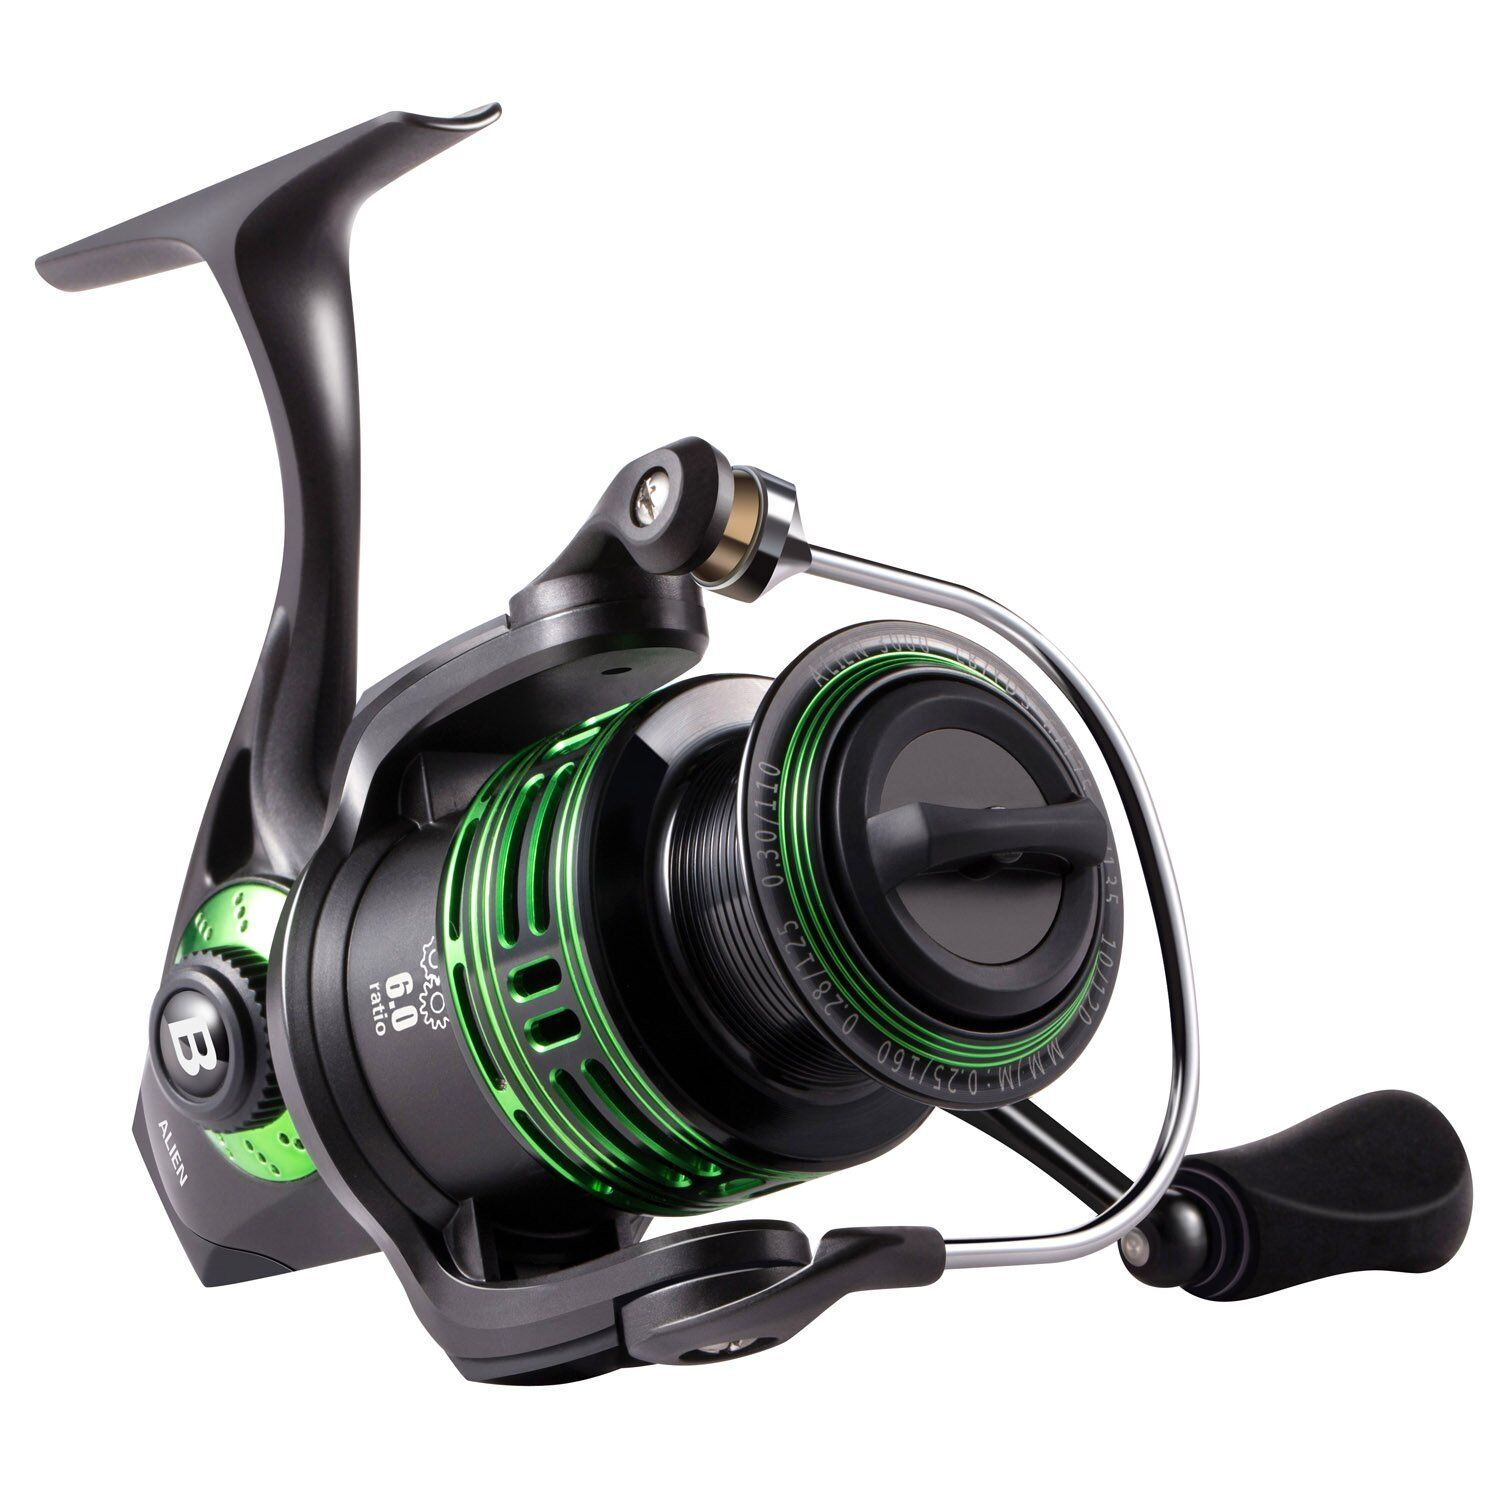 Bassdash Alien Ultra Lightweight Carbon Trout Spinning Fishing Reel with Corr...